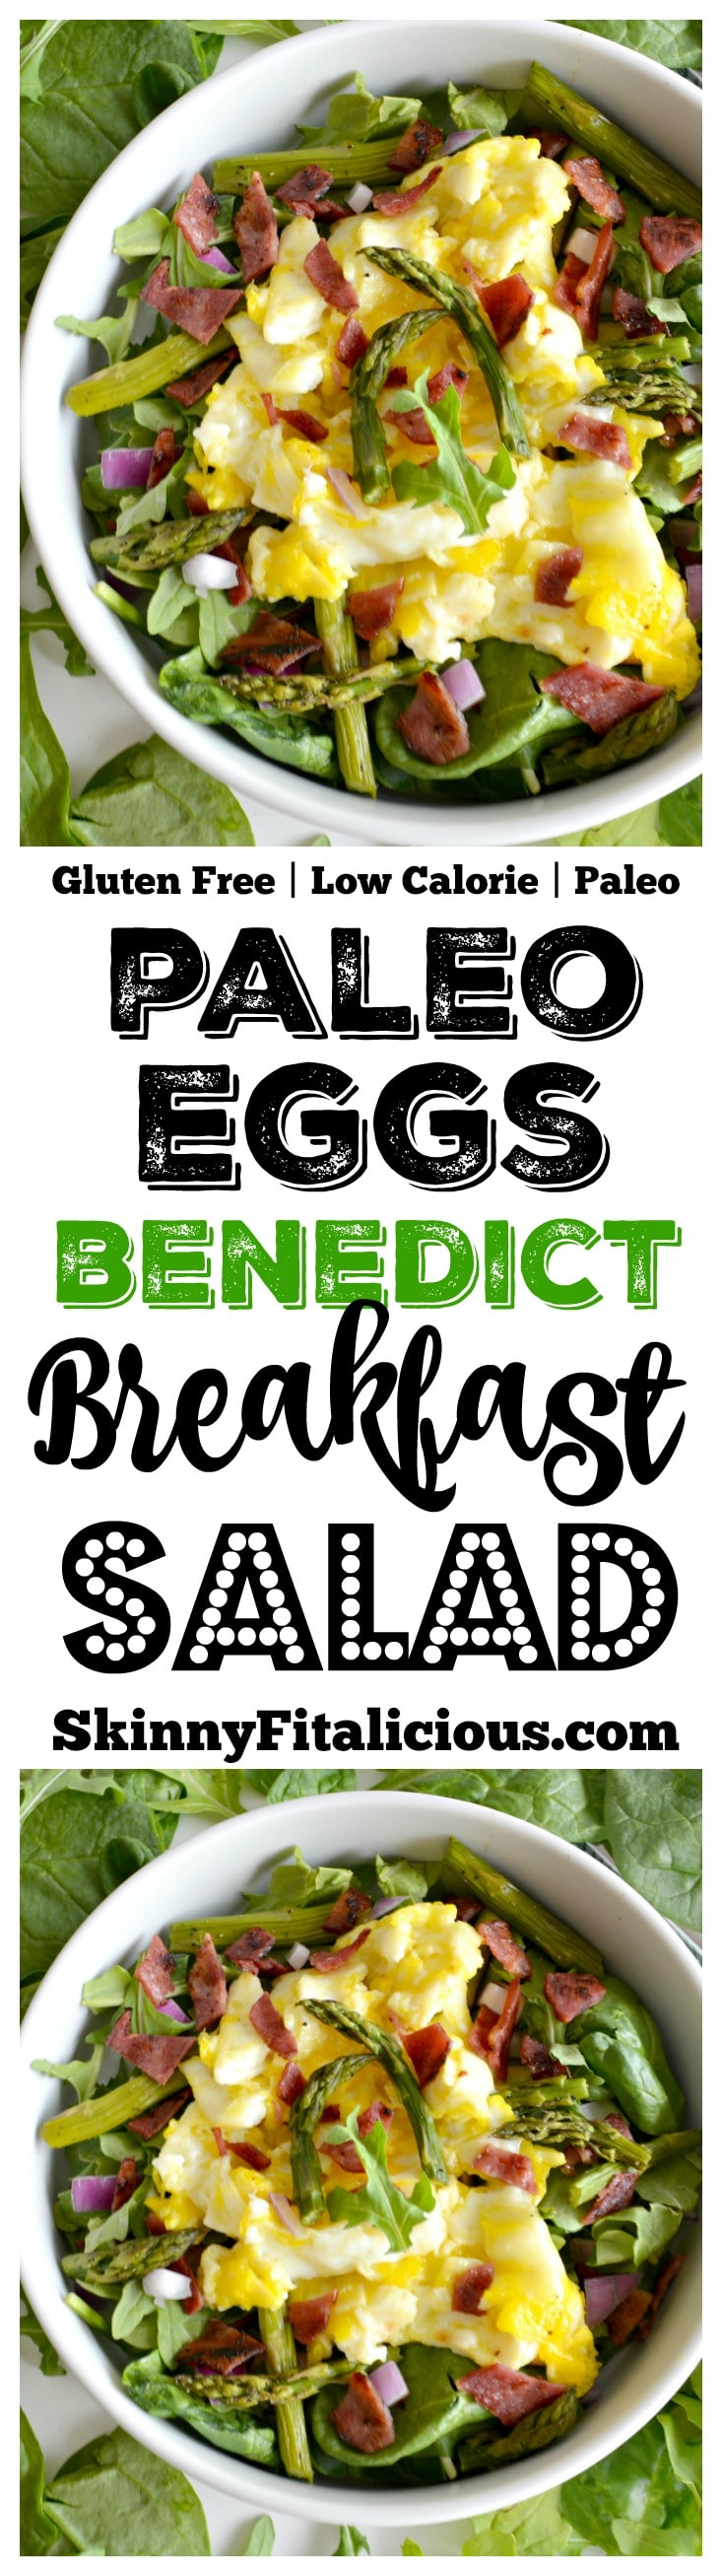 Start your day with an energizing bowl of produce topped with eggs. This Eggs Benedict Salad has gone green and lean with a mega loss in calories and boost of nutrition. Gluten Free + Low Calorie + Paleo